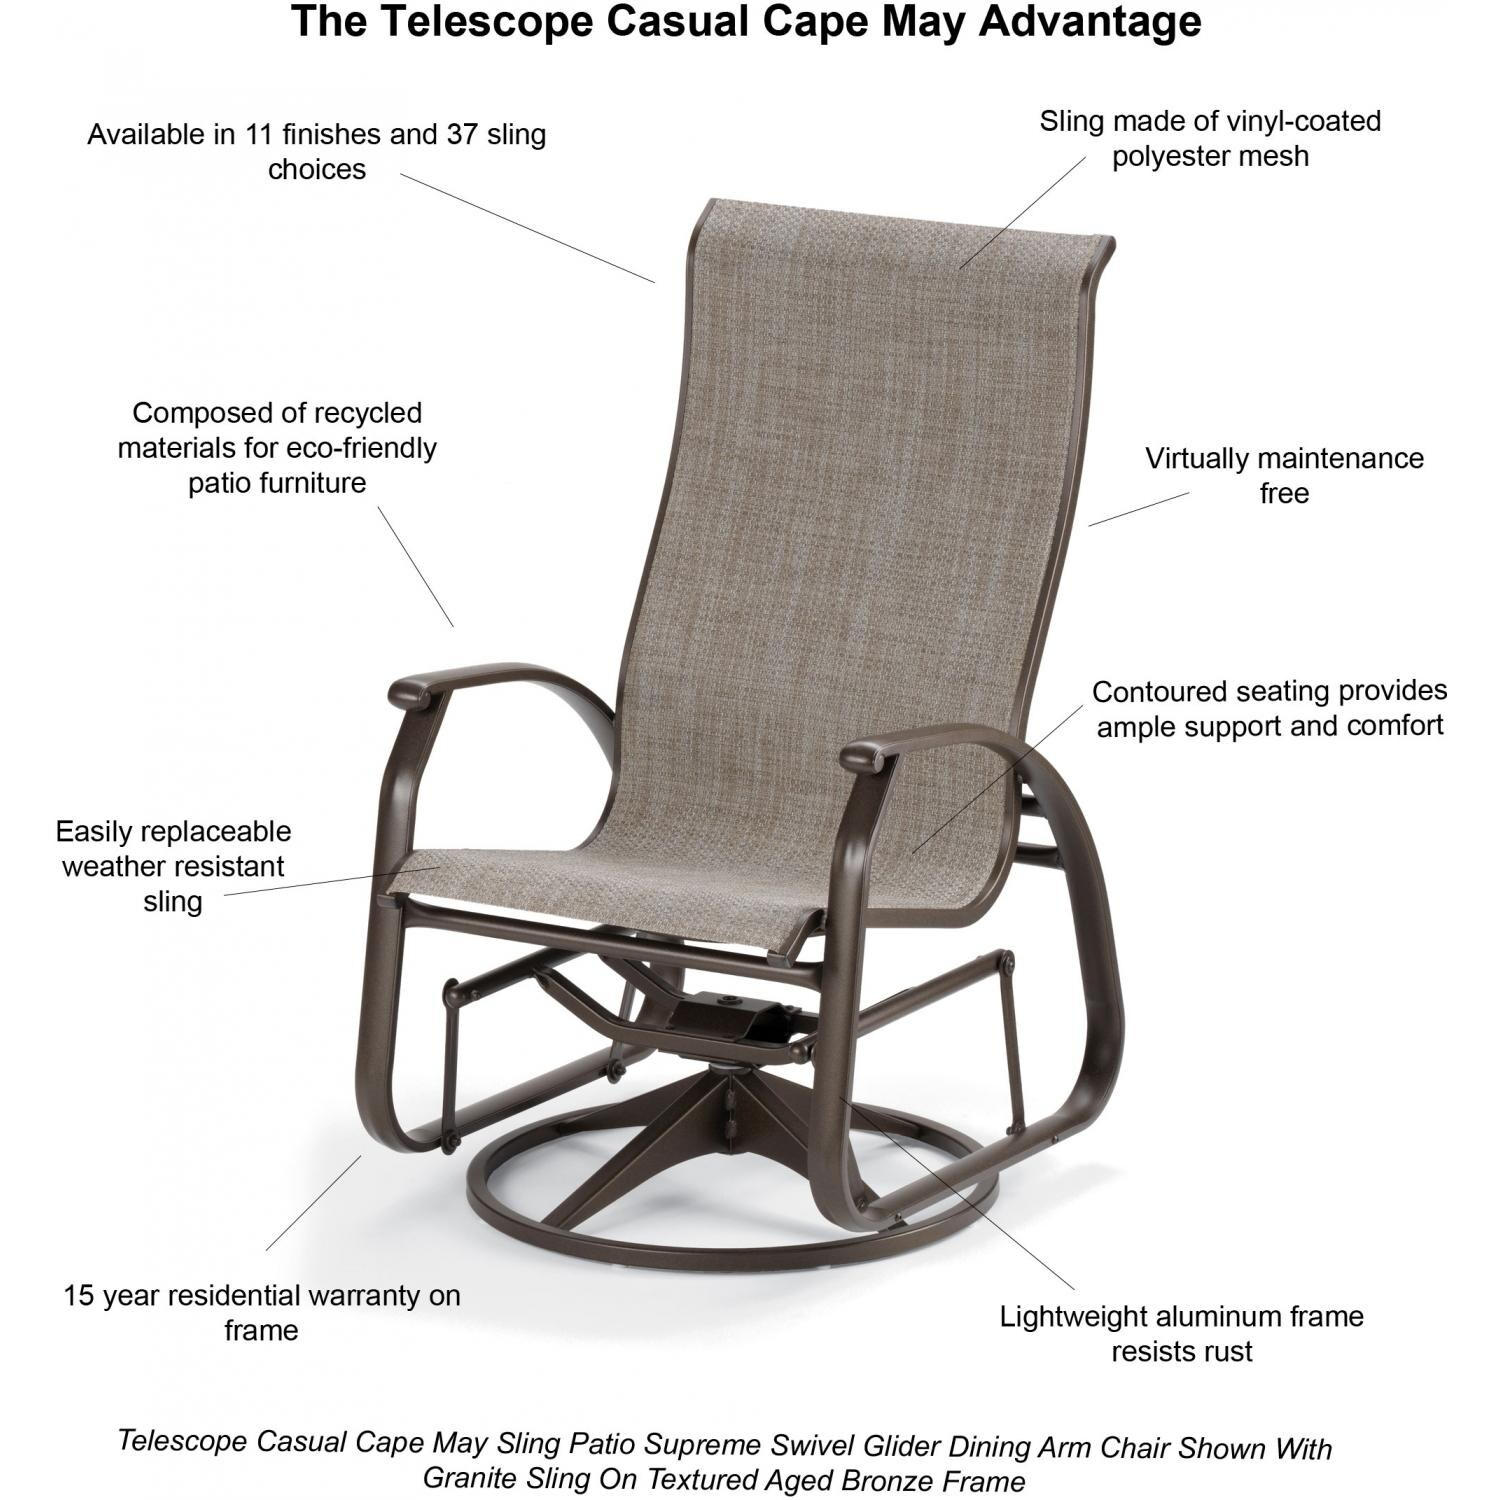 Telescope Casual Cape May Sling Patio Supreme Swivel Glider Dining